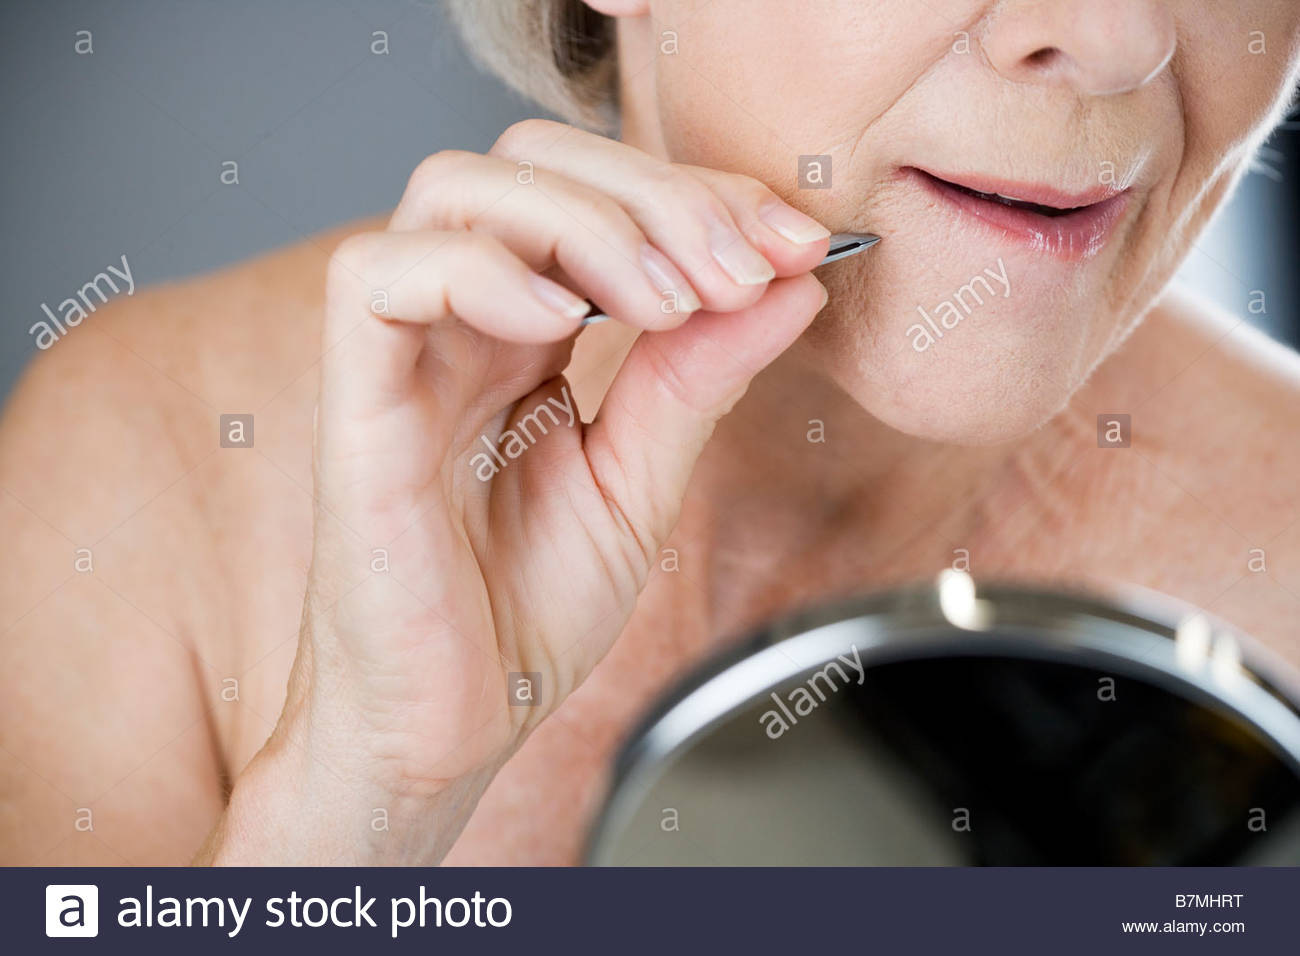 A senior woman plucking hairs from her chin with tweezers - Stock Image